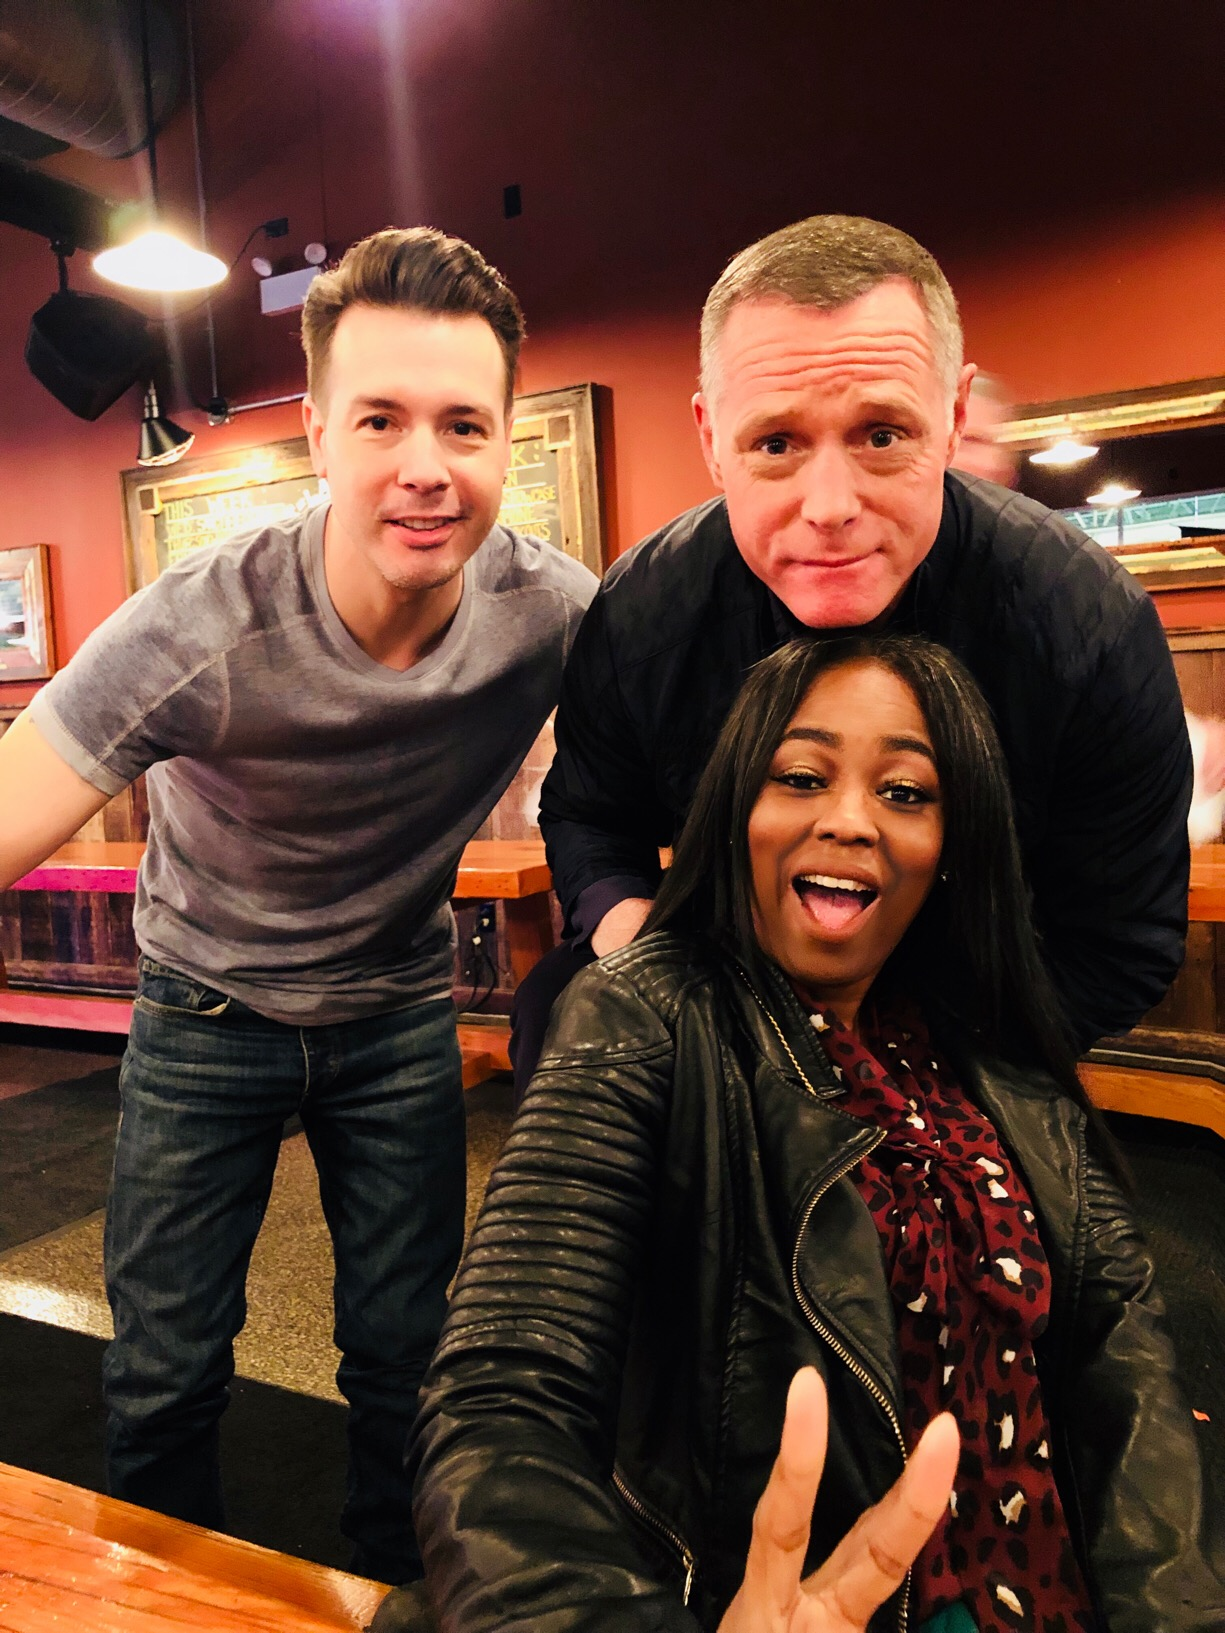 Round Table Discussion With Actors Jason Beghe And Jon Seda From NBC's Chicago P.D.